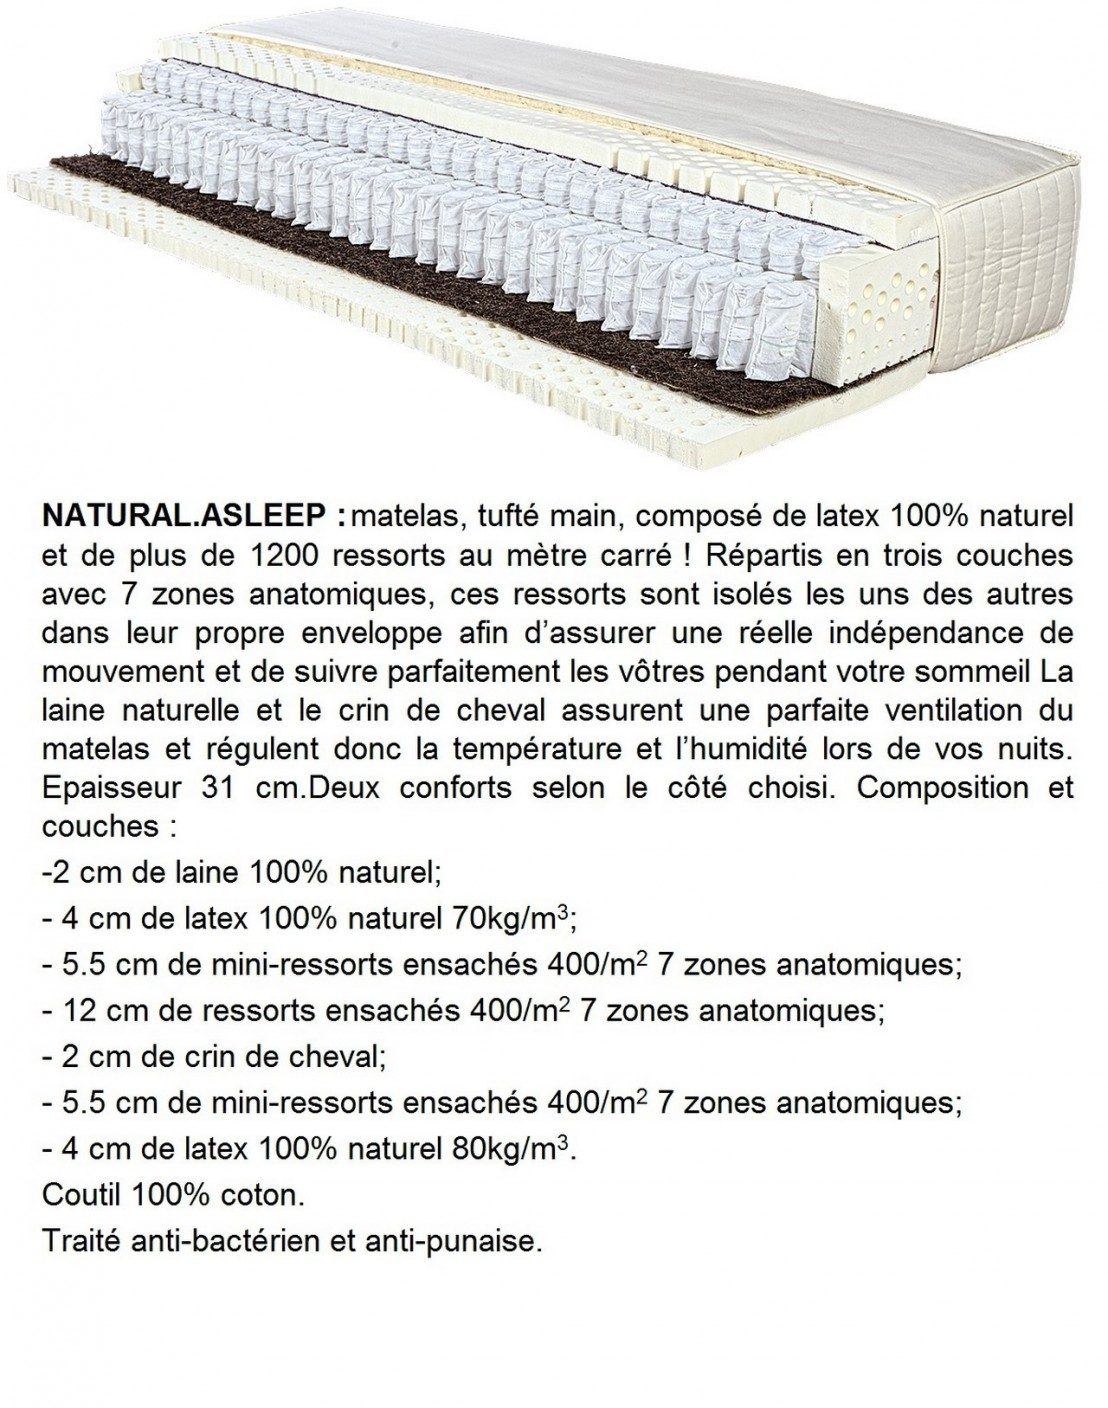 matelas latex 100 naturel 160 cm triple ressorts double sommier ergobox. Black Bedroom Furniture Sets. Home Design Ideas